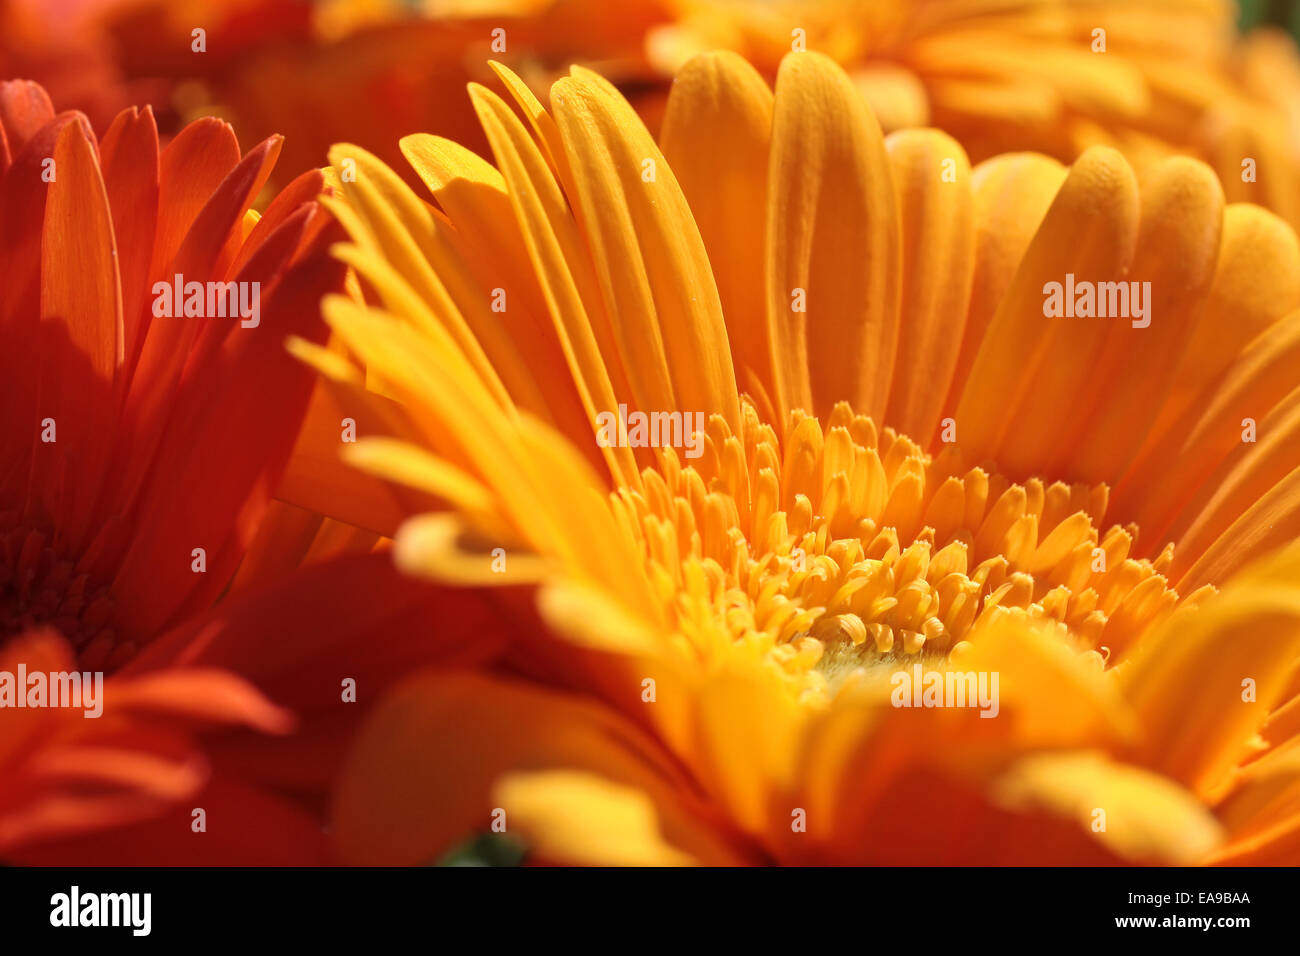 Close up of several orange gerbera flowers - Stock Image